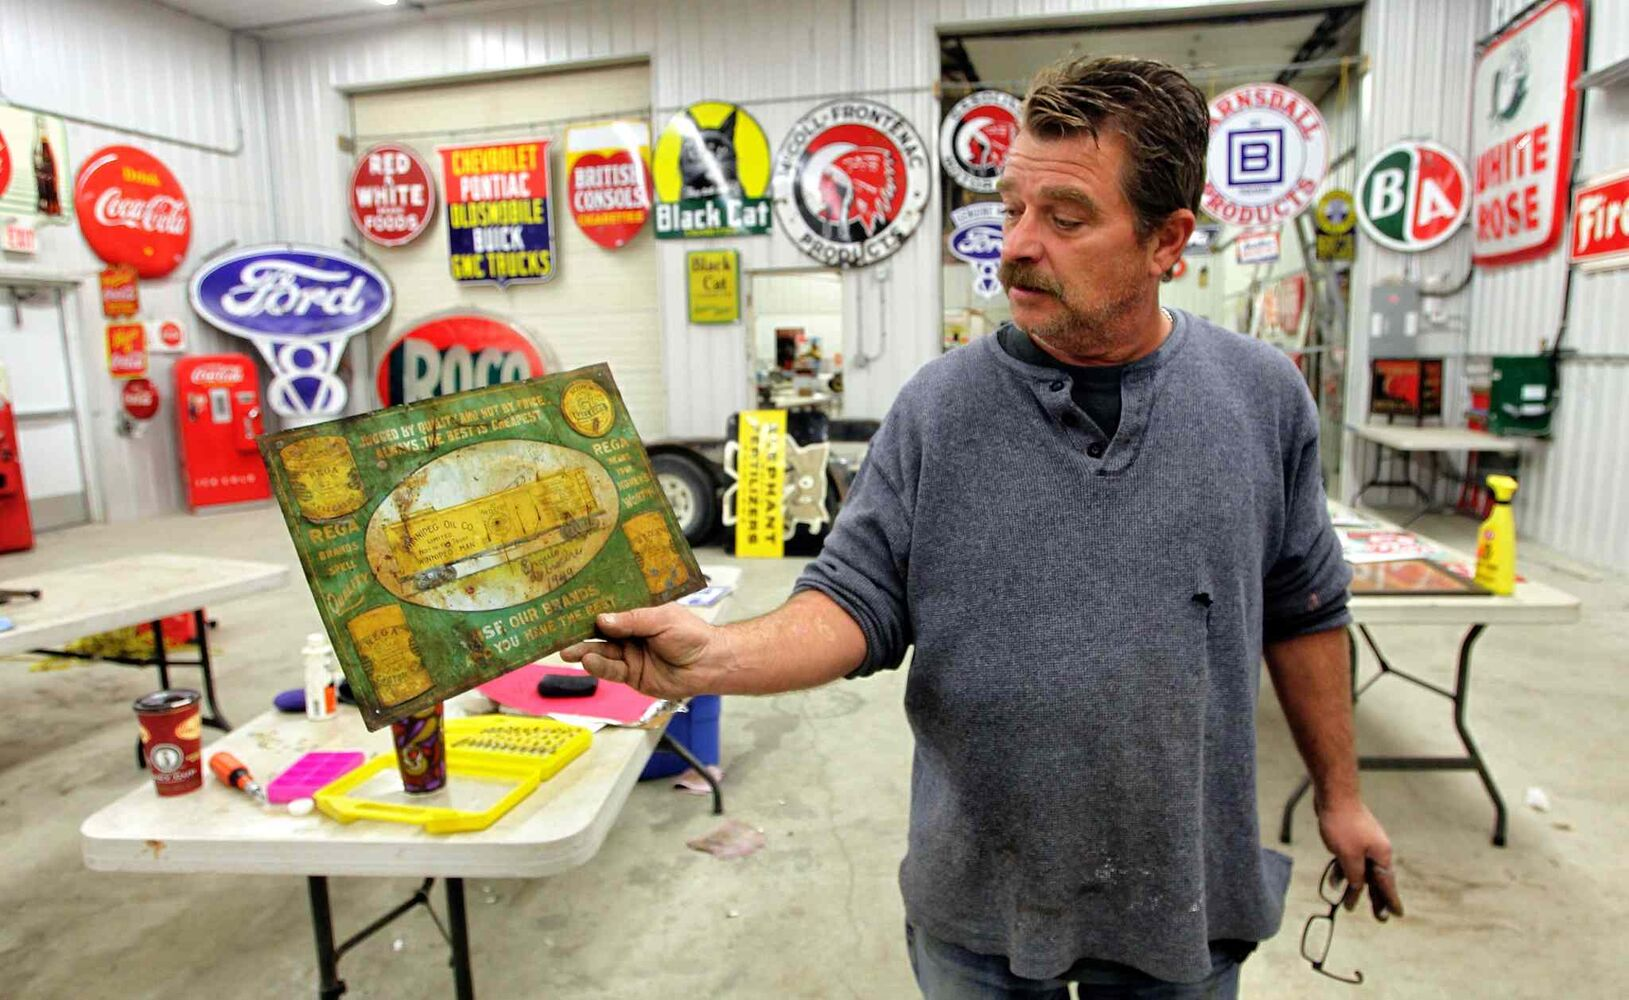 Bill Krasey gets some of the items ready for this weekend's auction in Stonewall, MB. (MIKE DEAL / WINNIPEG FREE PRESS)